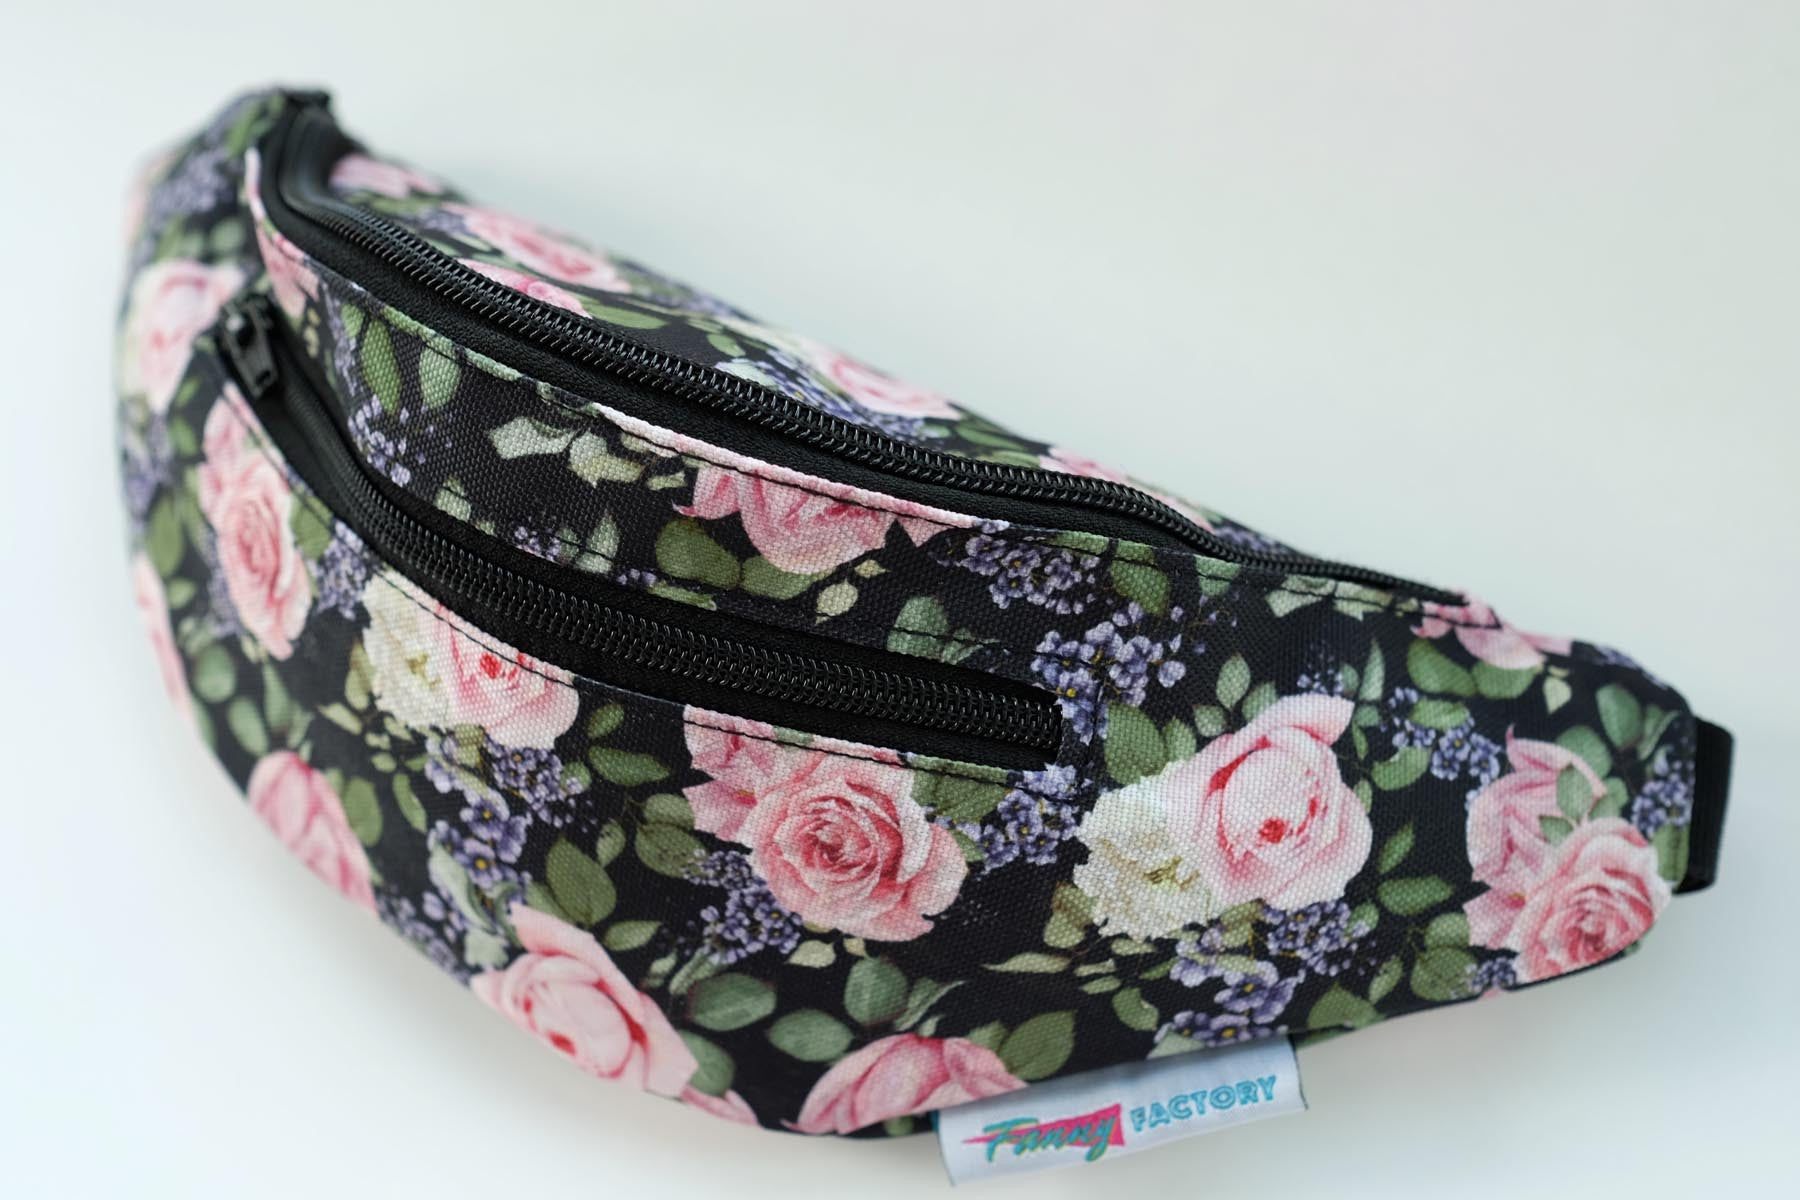 58a632870967 Floral Fanny Pack | Fashion Fanny Packs for Women, Men & Kids ...